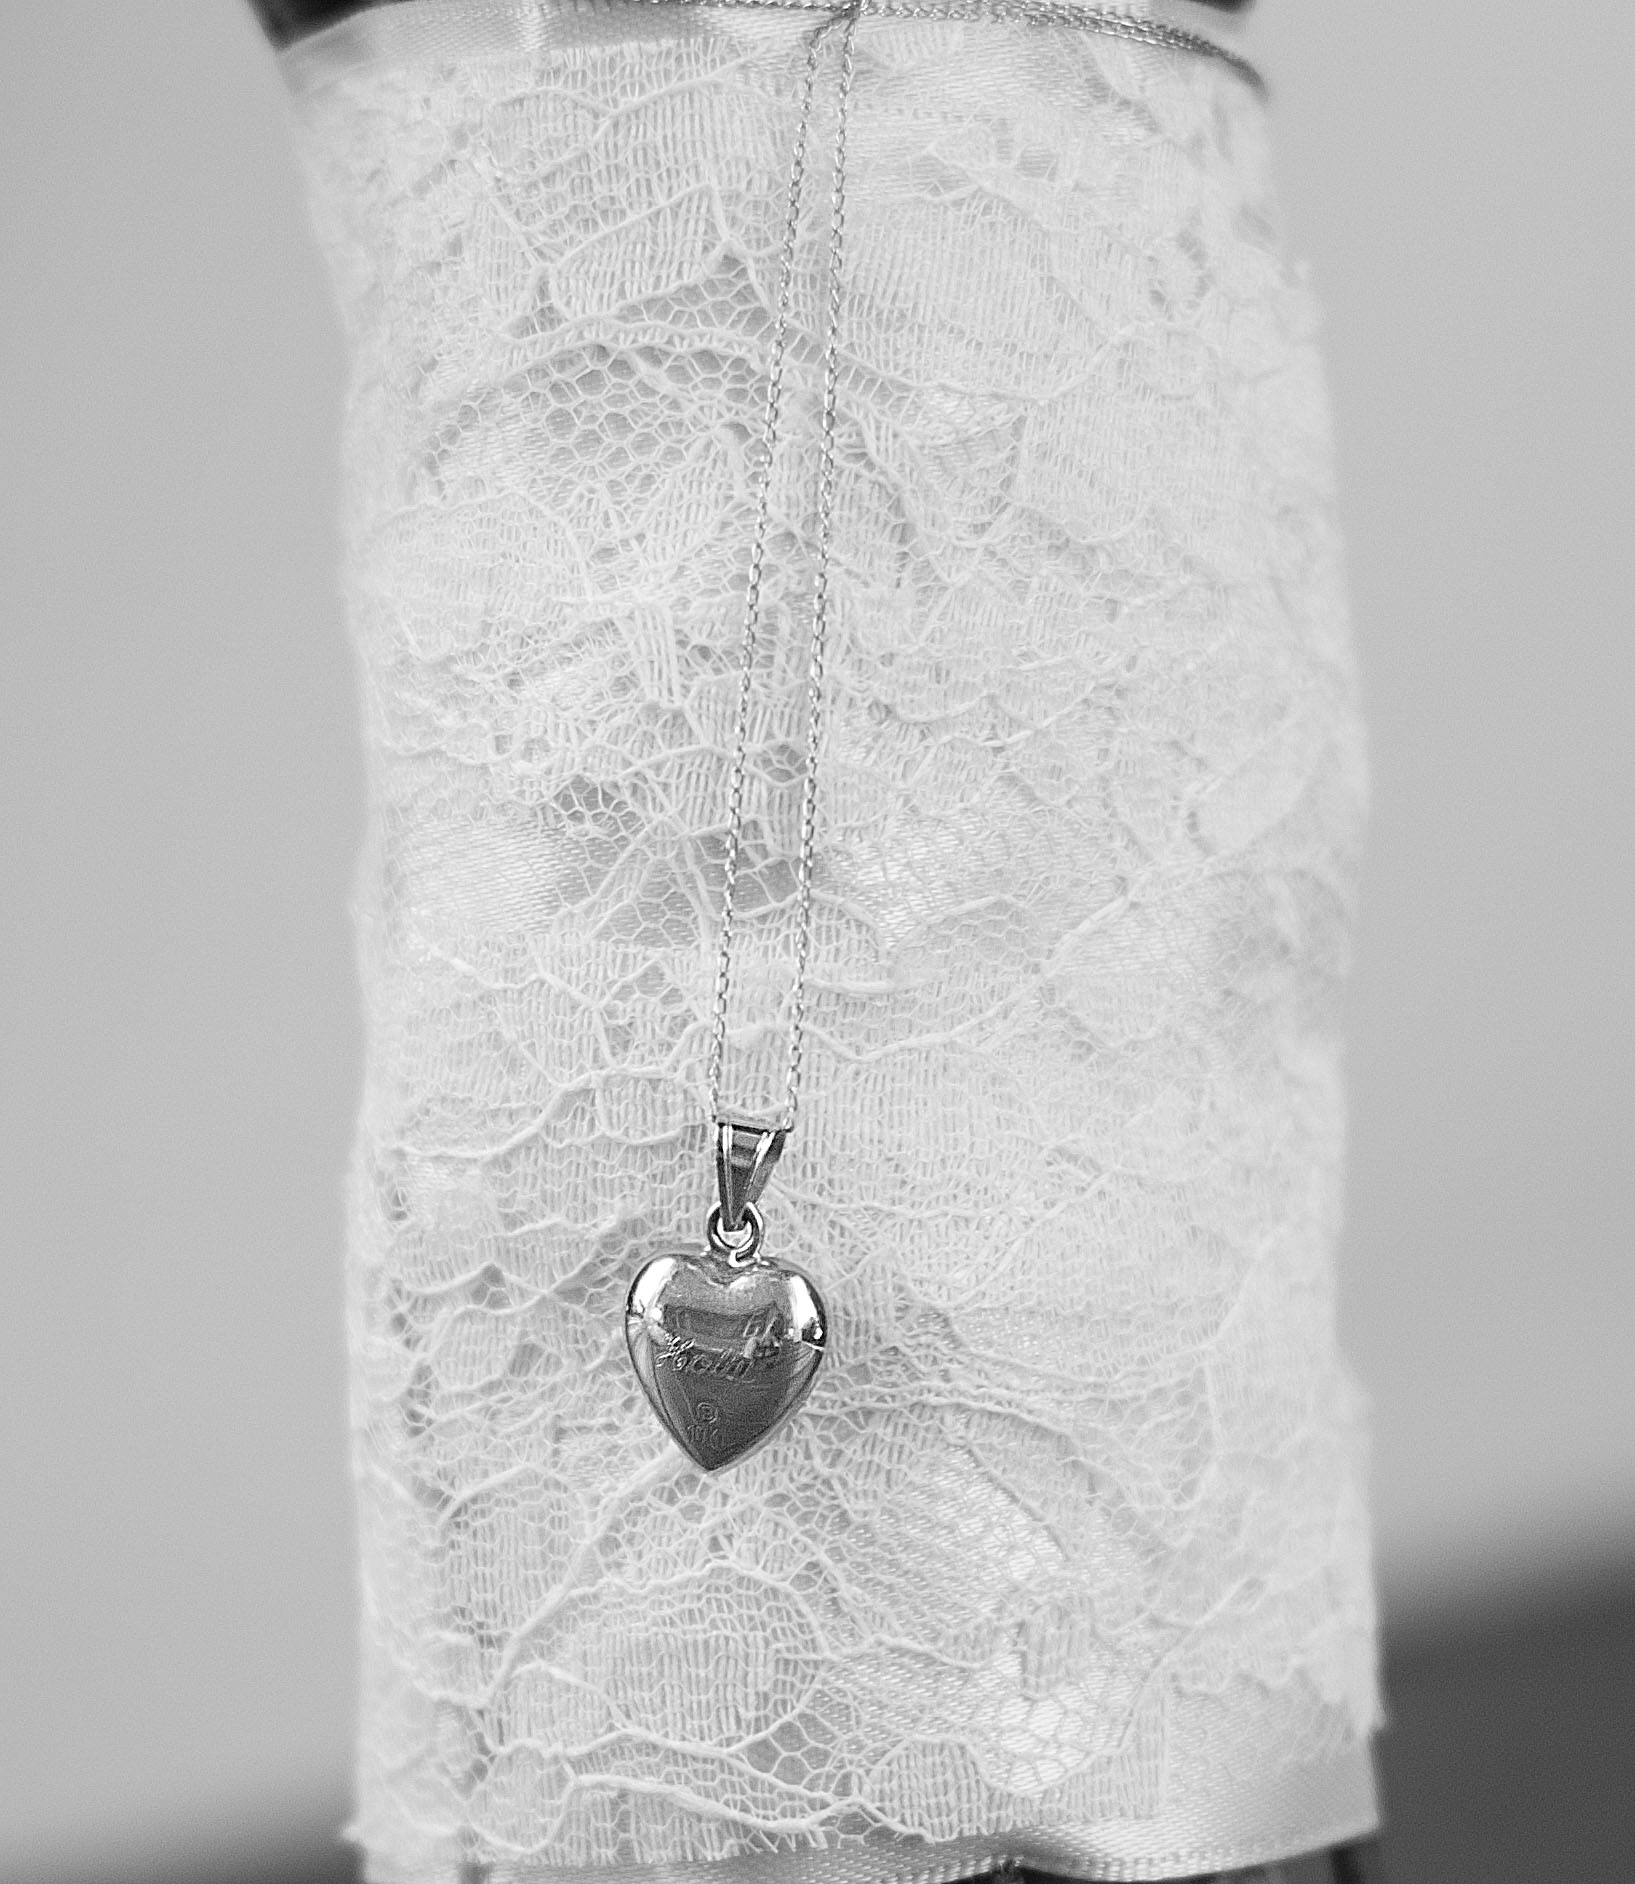 I loved this beautiful detail of a locket that was given to Holly at her mother's wedding.